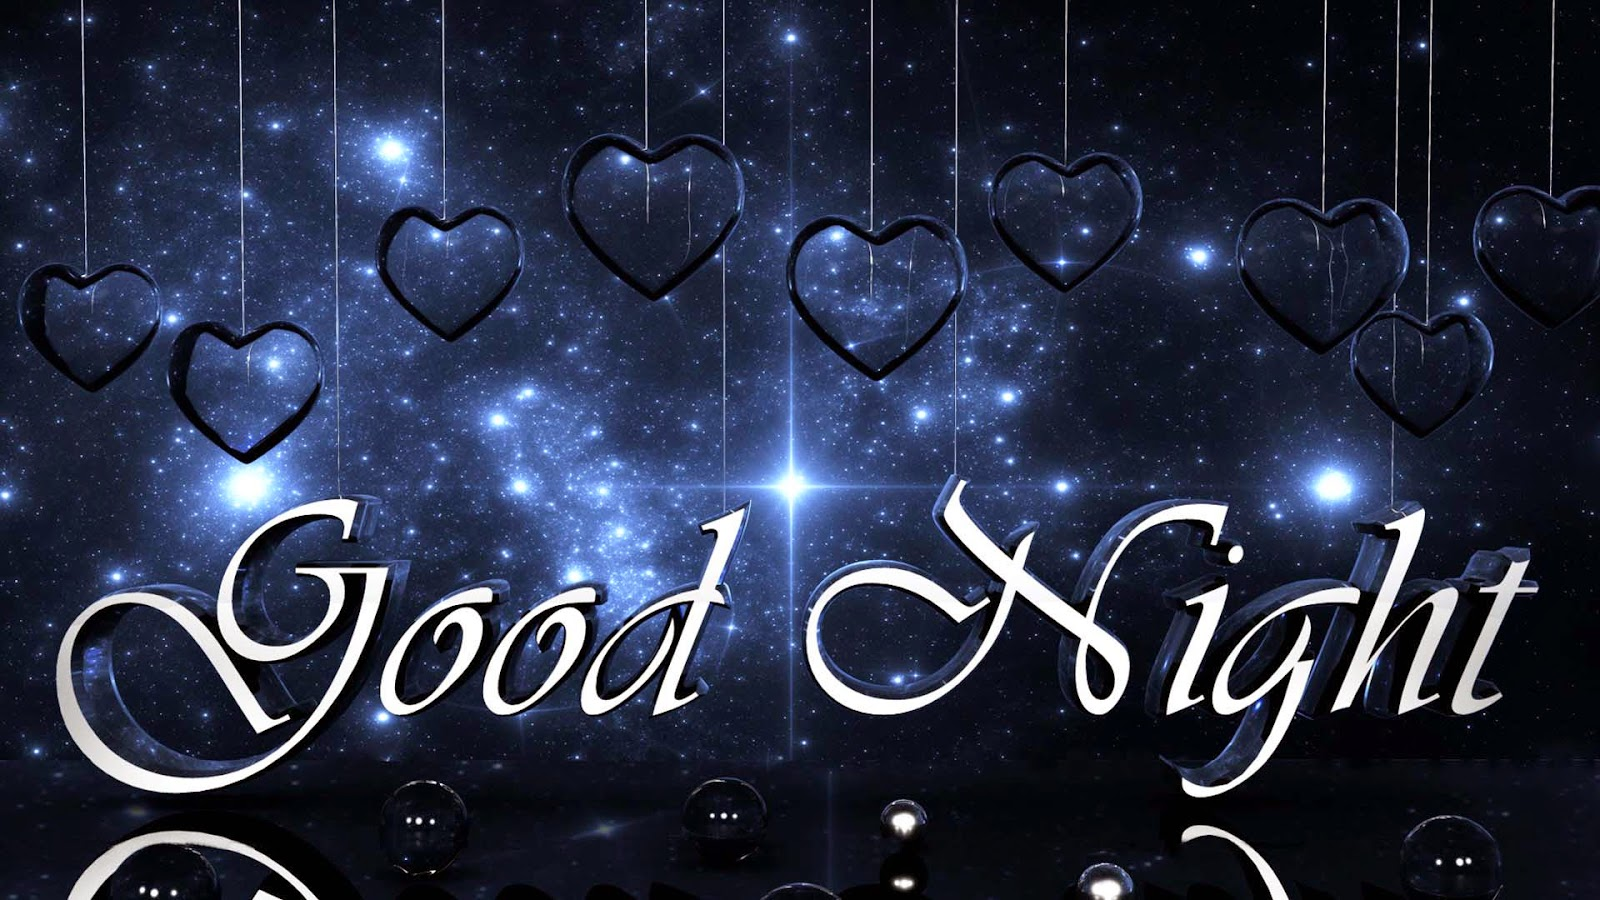 Love Wallpaper Of Good Night : Good Night Love Wallpaper - WallpaperSafari